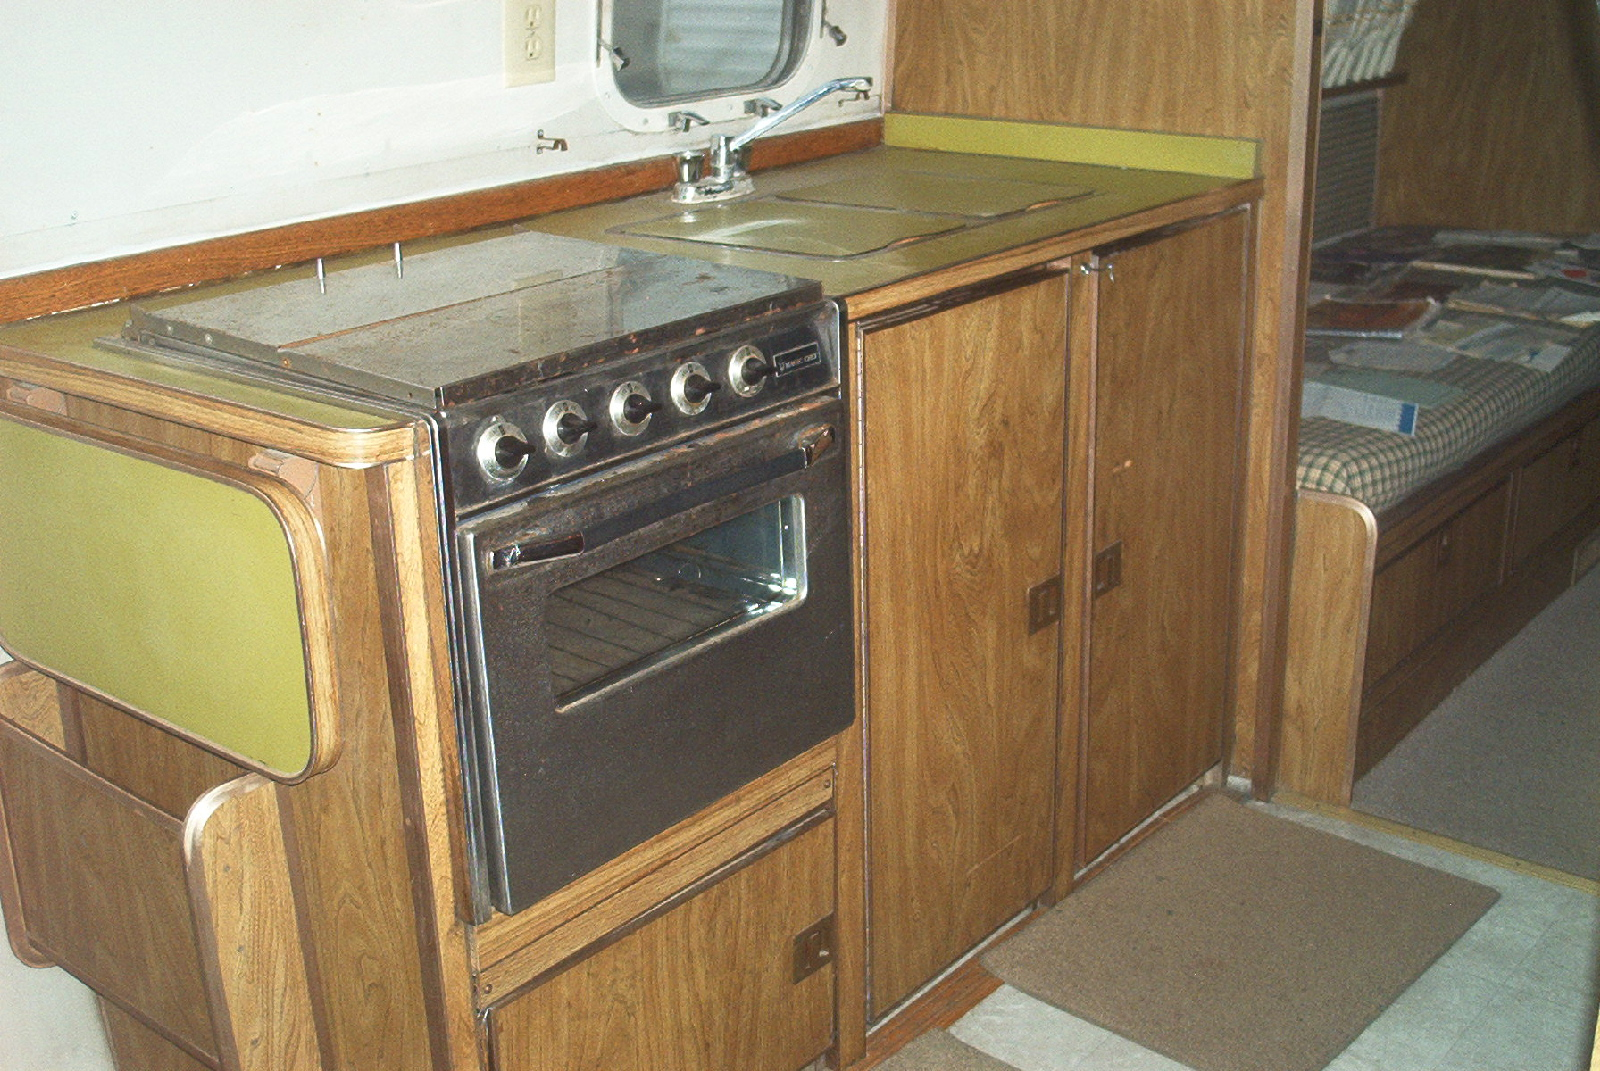 Click image for larger version  Name:Old curb side cabinet.jpg Views:79 Size:958.6 KB ID:95501